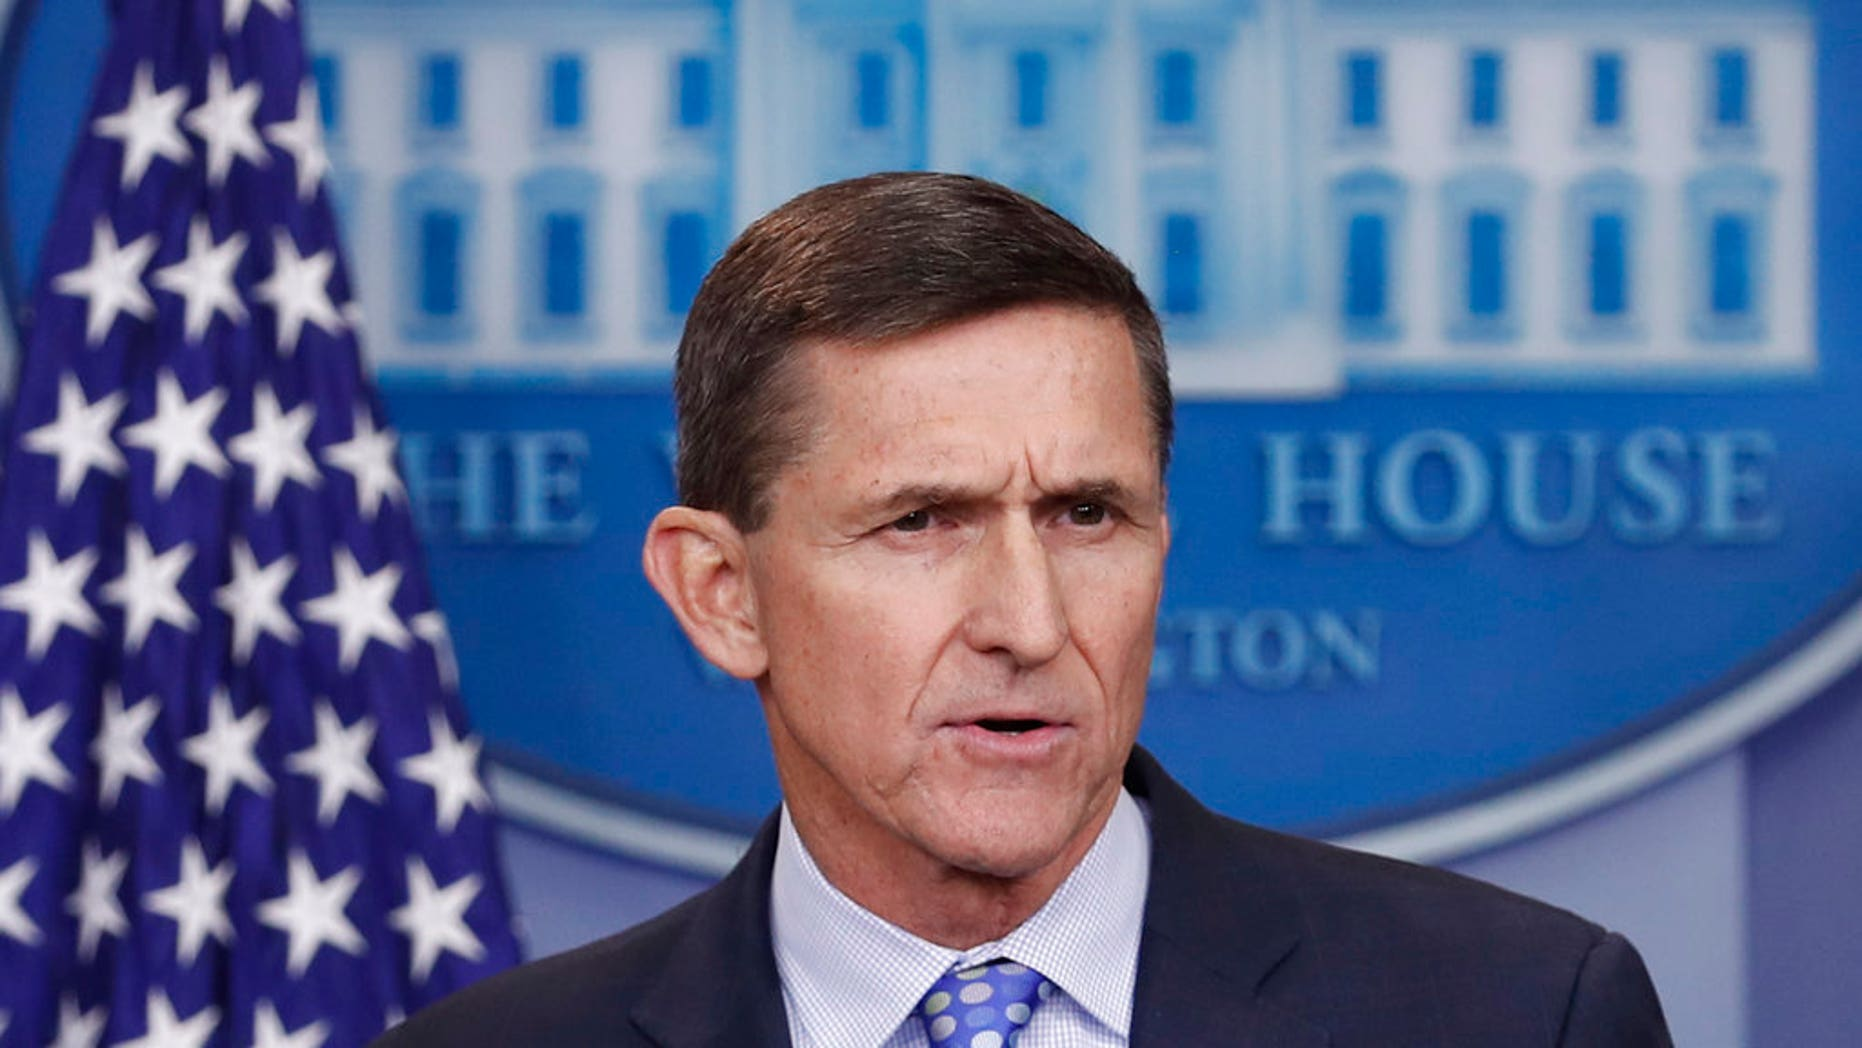 FILE - In this Feb. 1, 2017, file photo, then - National Security Adviser Michael Flynn speaks during the daily news briefing at the White House, in Washington. Flynn is relaxed and hopeful even as the possibility of prison looms when he's sentenced in the Russia probe Tuesday, Dec. 18, 2018. The retired three-star general pleaded guilty last year to lying to the FBI about conversations he had with the then-Russian ambassador to the U.S. during President Donald Trump's White House transition. (AP Photo/Carolyn Kaster, File)